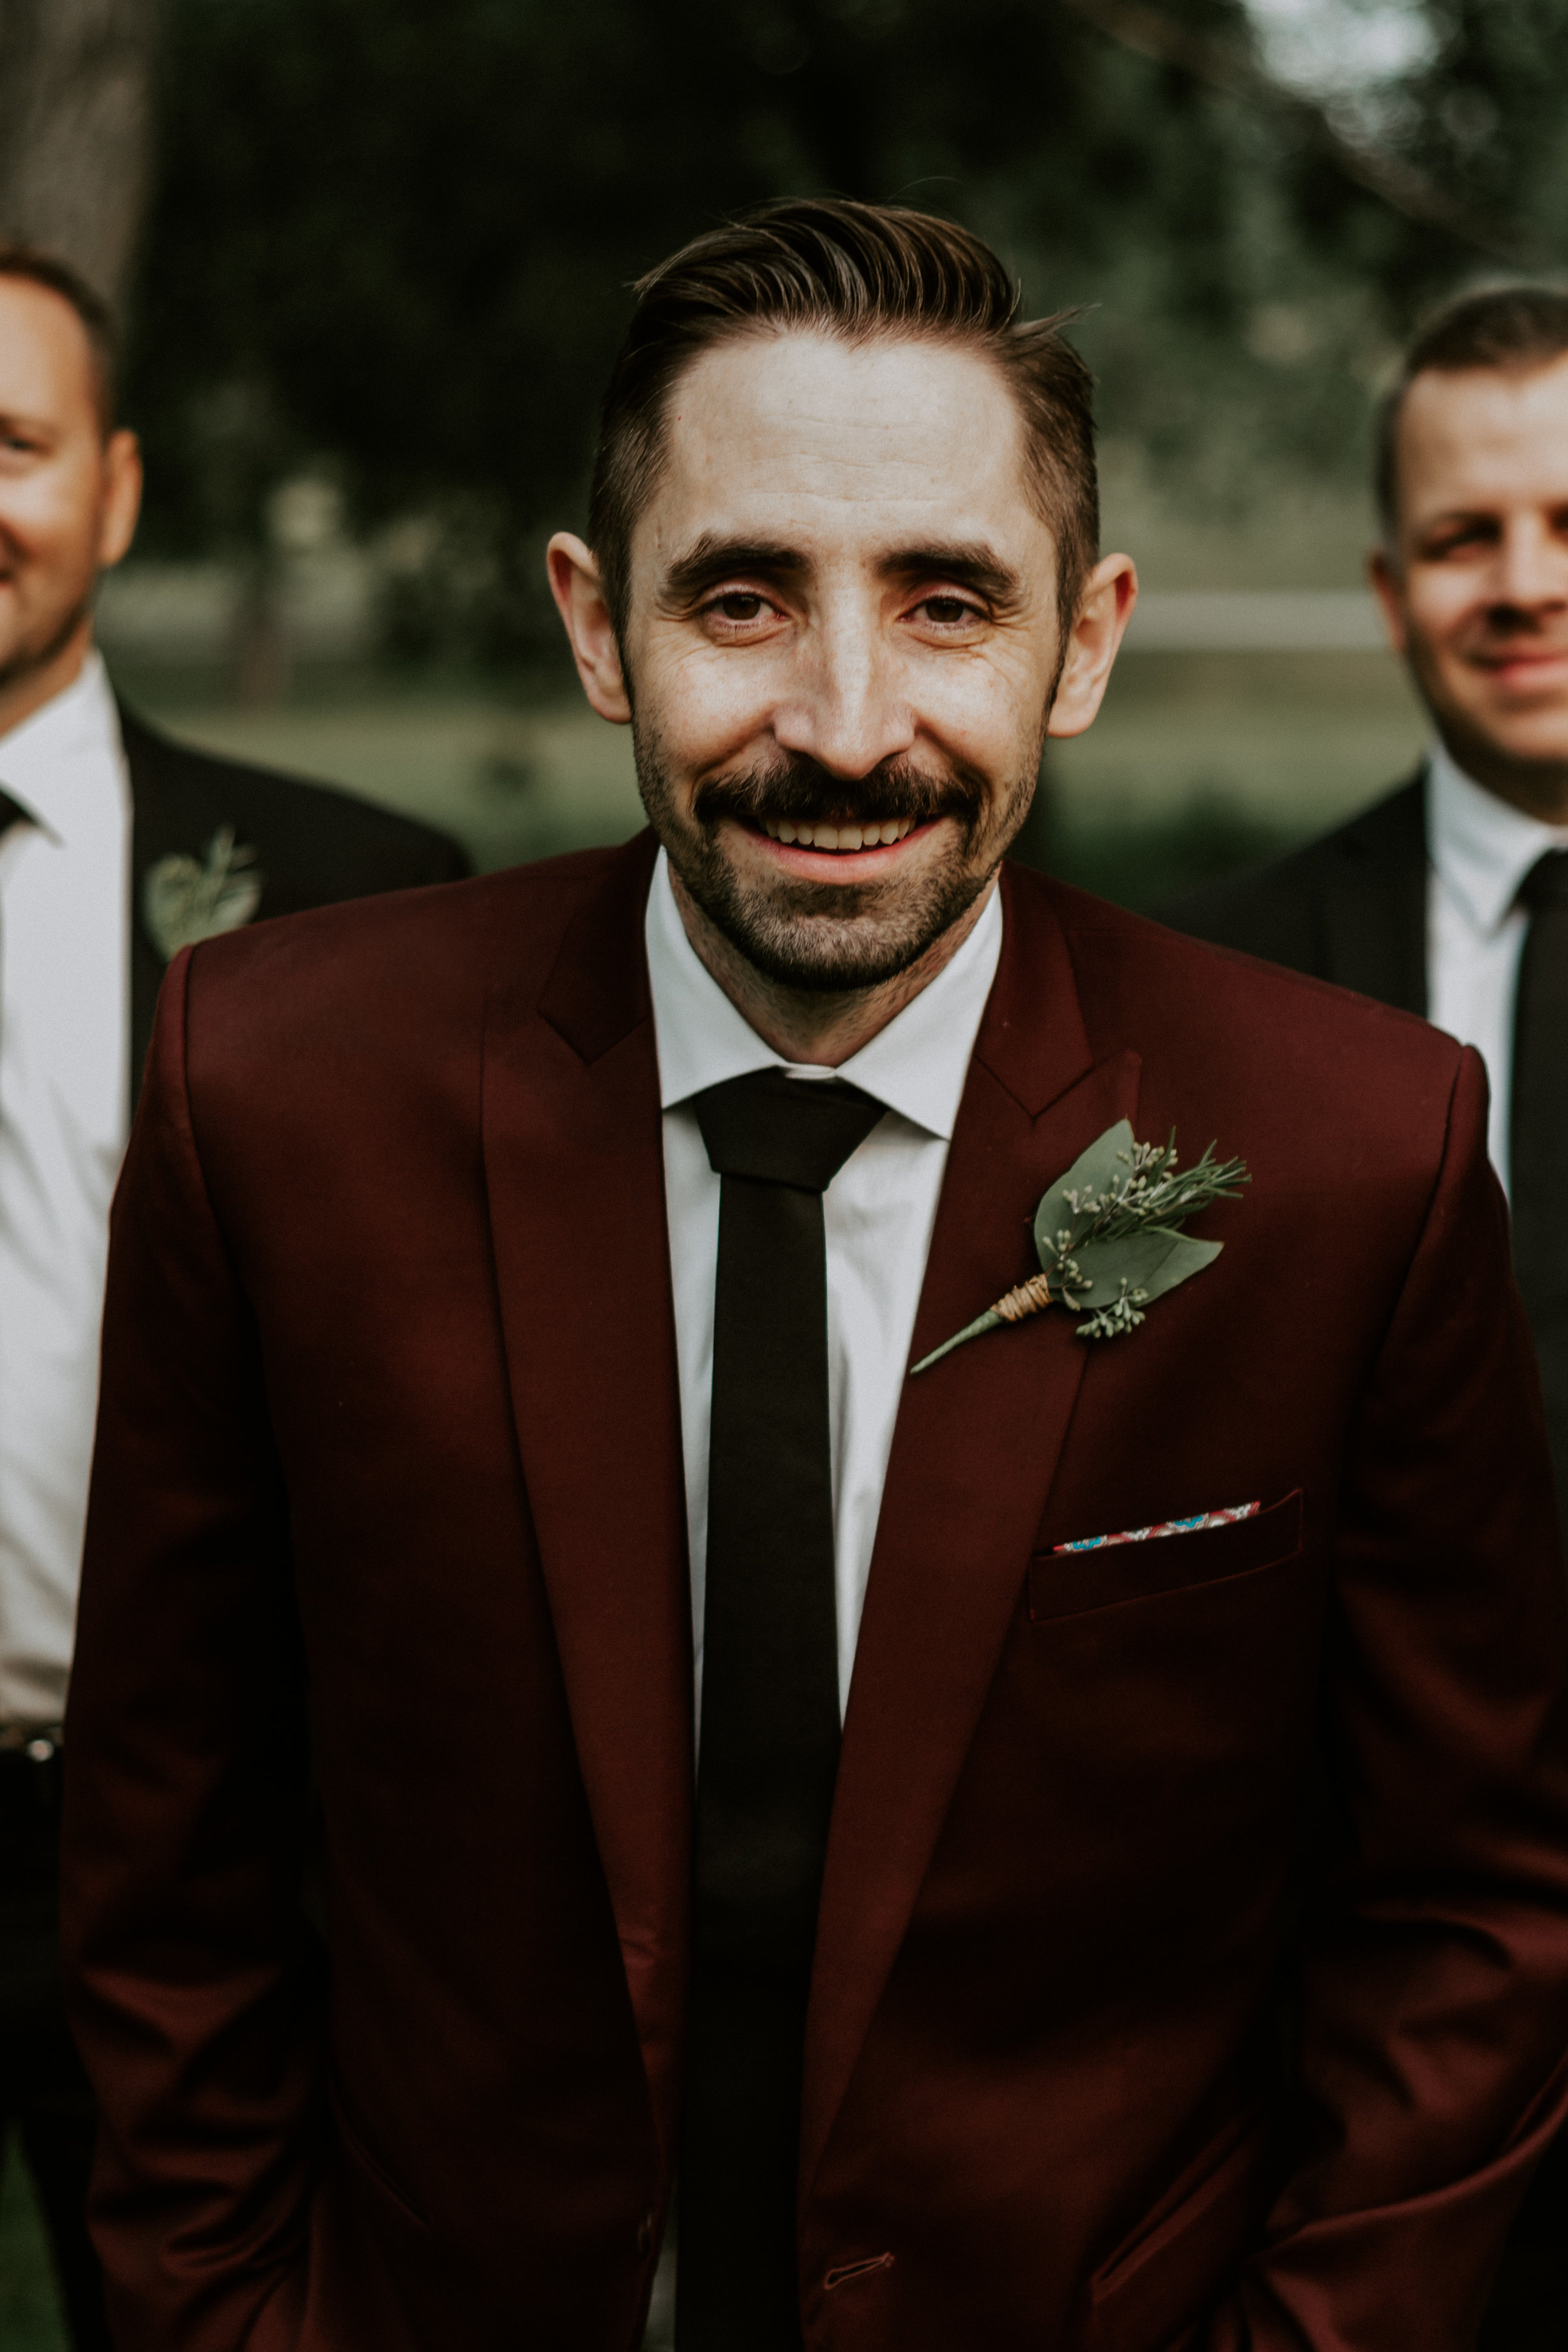 Calgary Wedding Photographer - 50 of 84.jpg